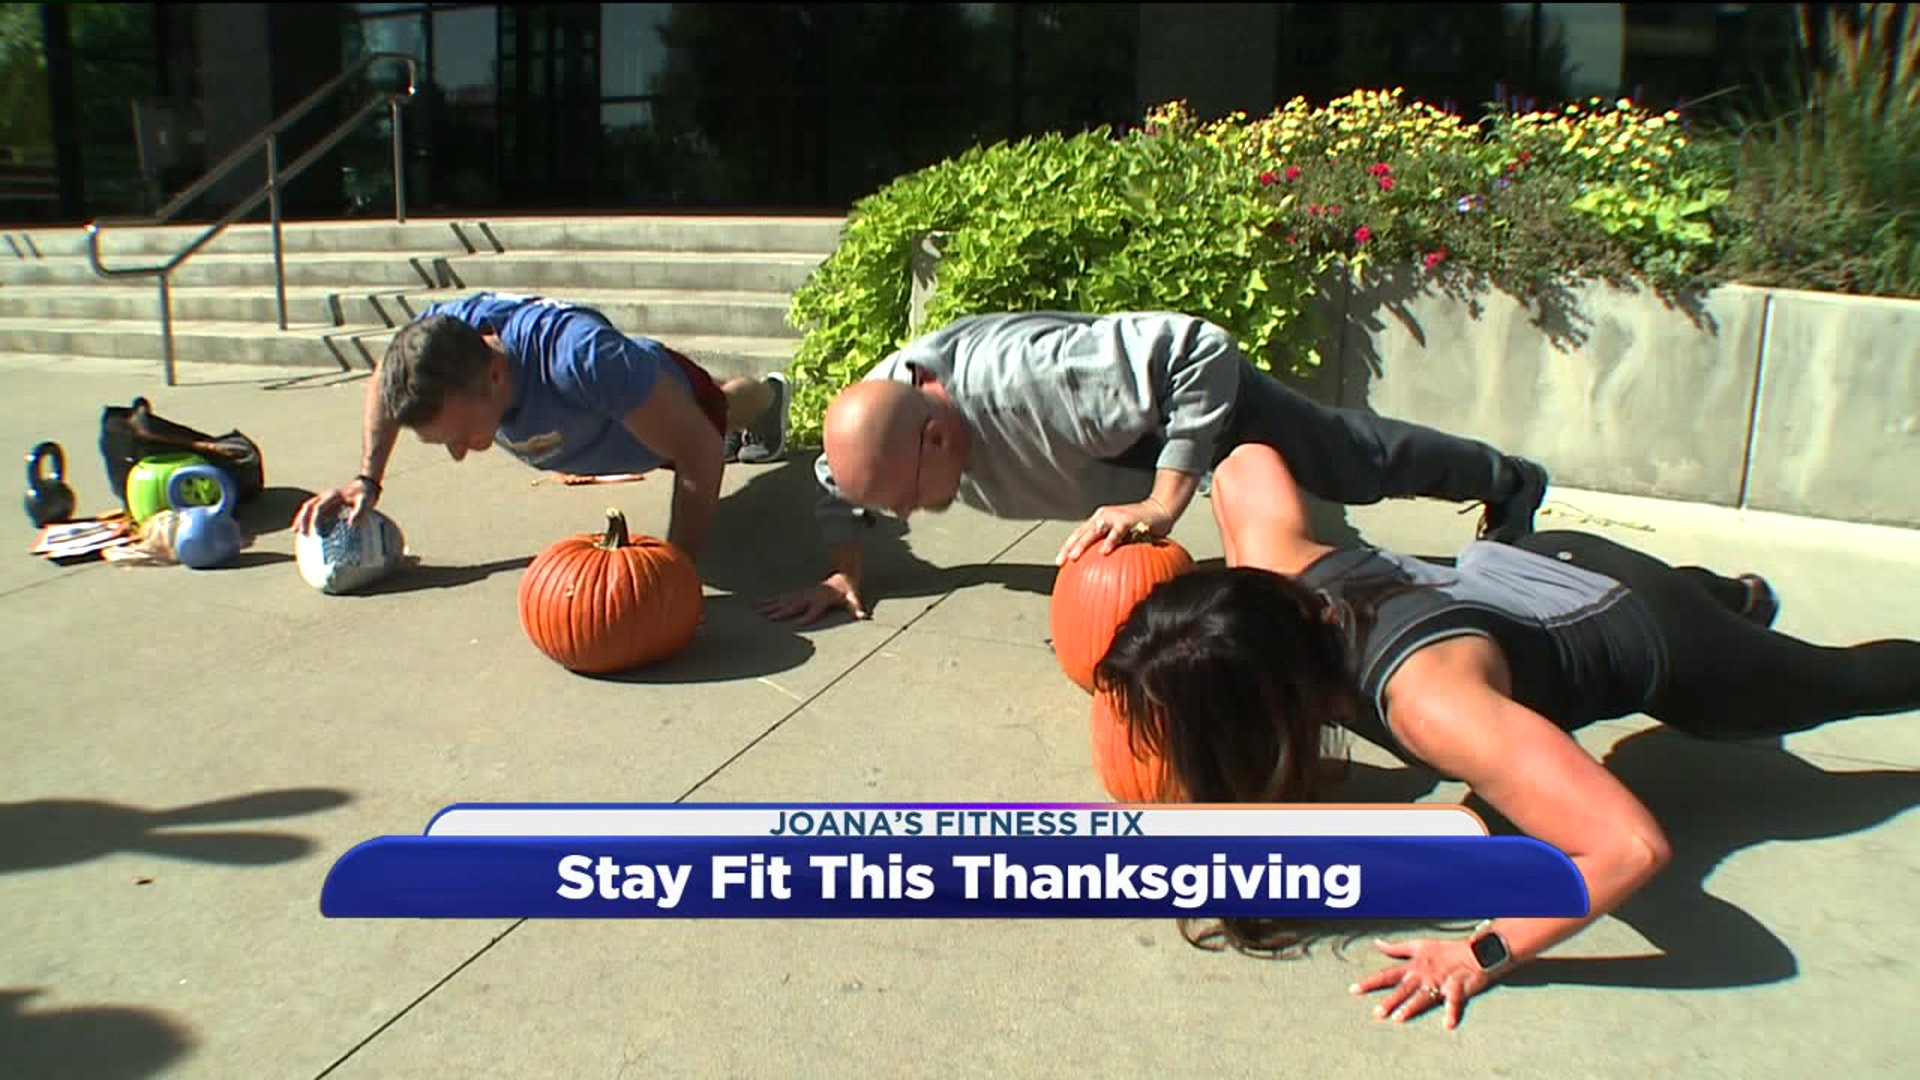 Burning Off Thanksgiving Calories Joana S Fitness Fix